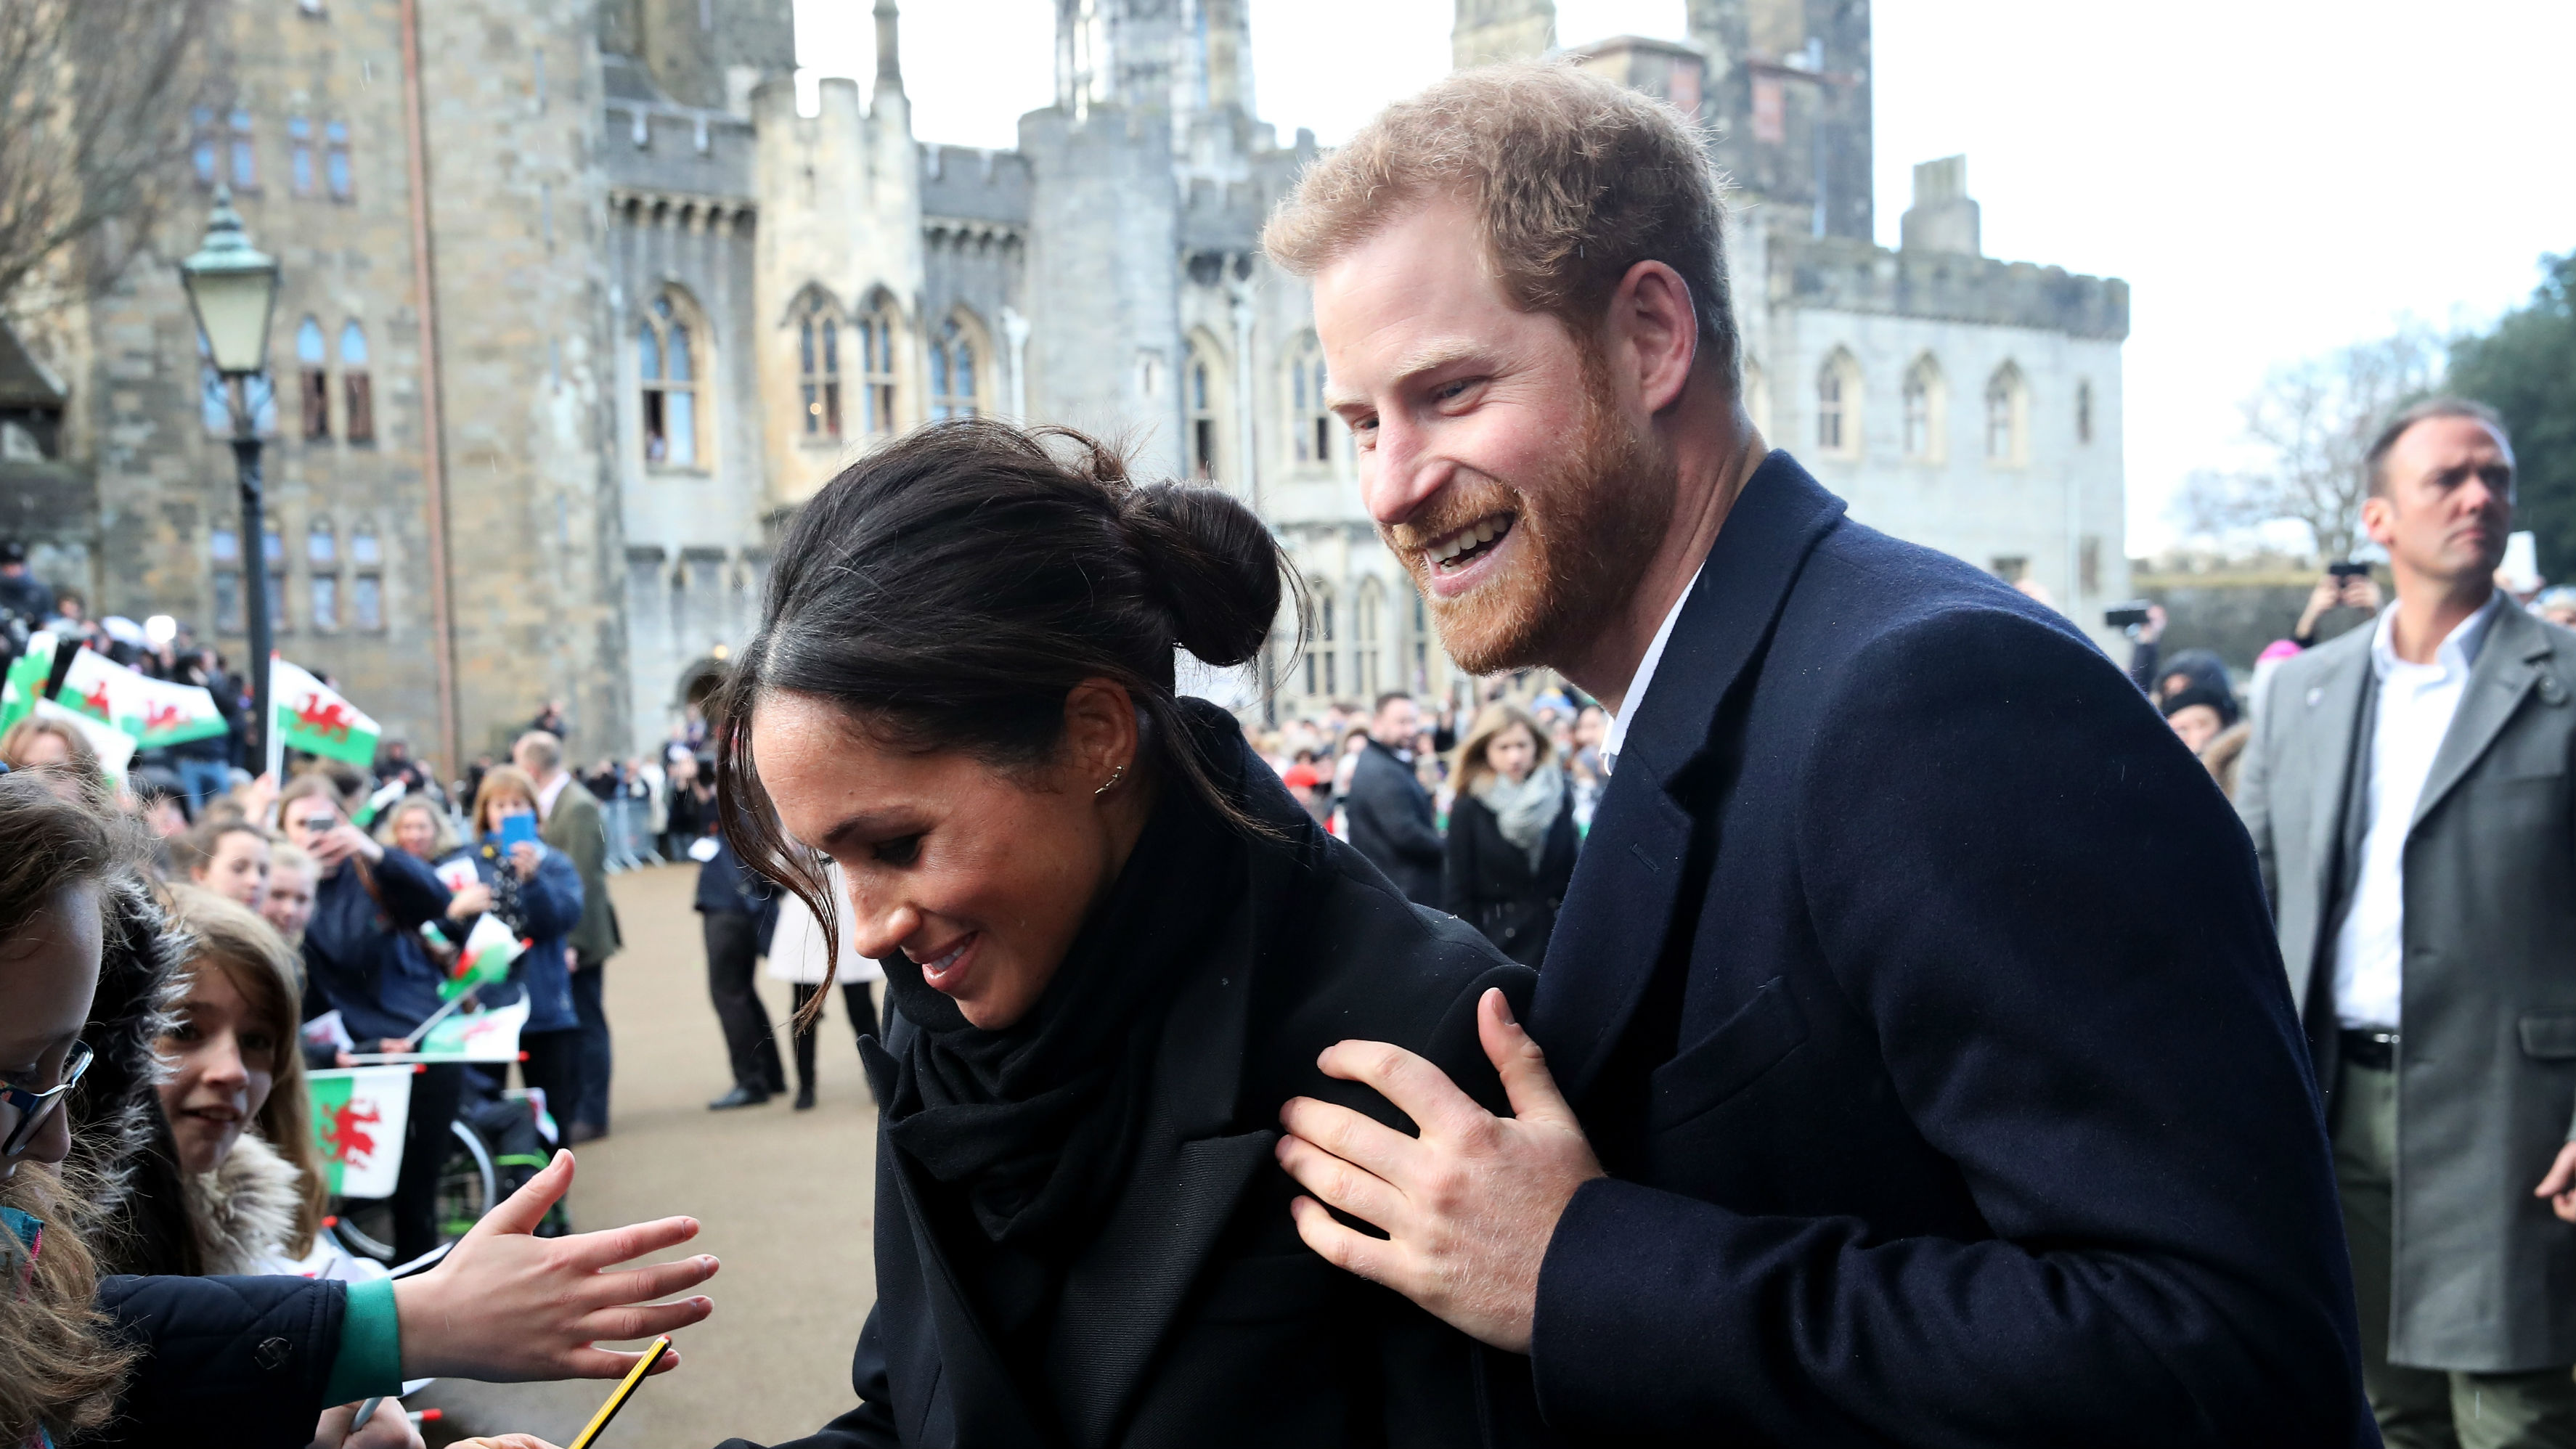 Prince Harry and Meghan Markle Eviction Rumors and Truth